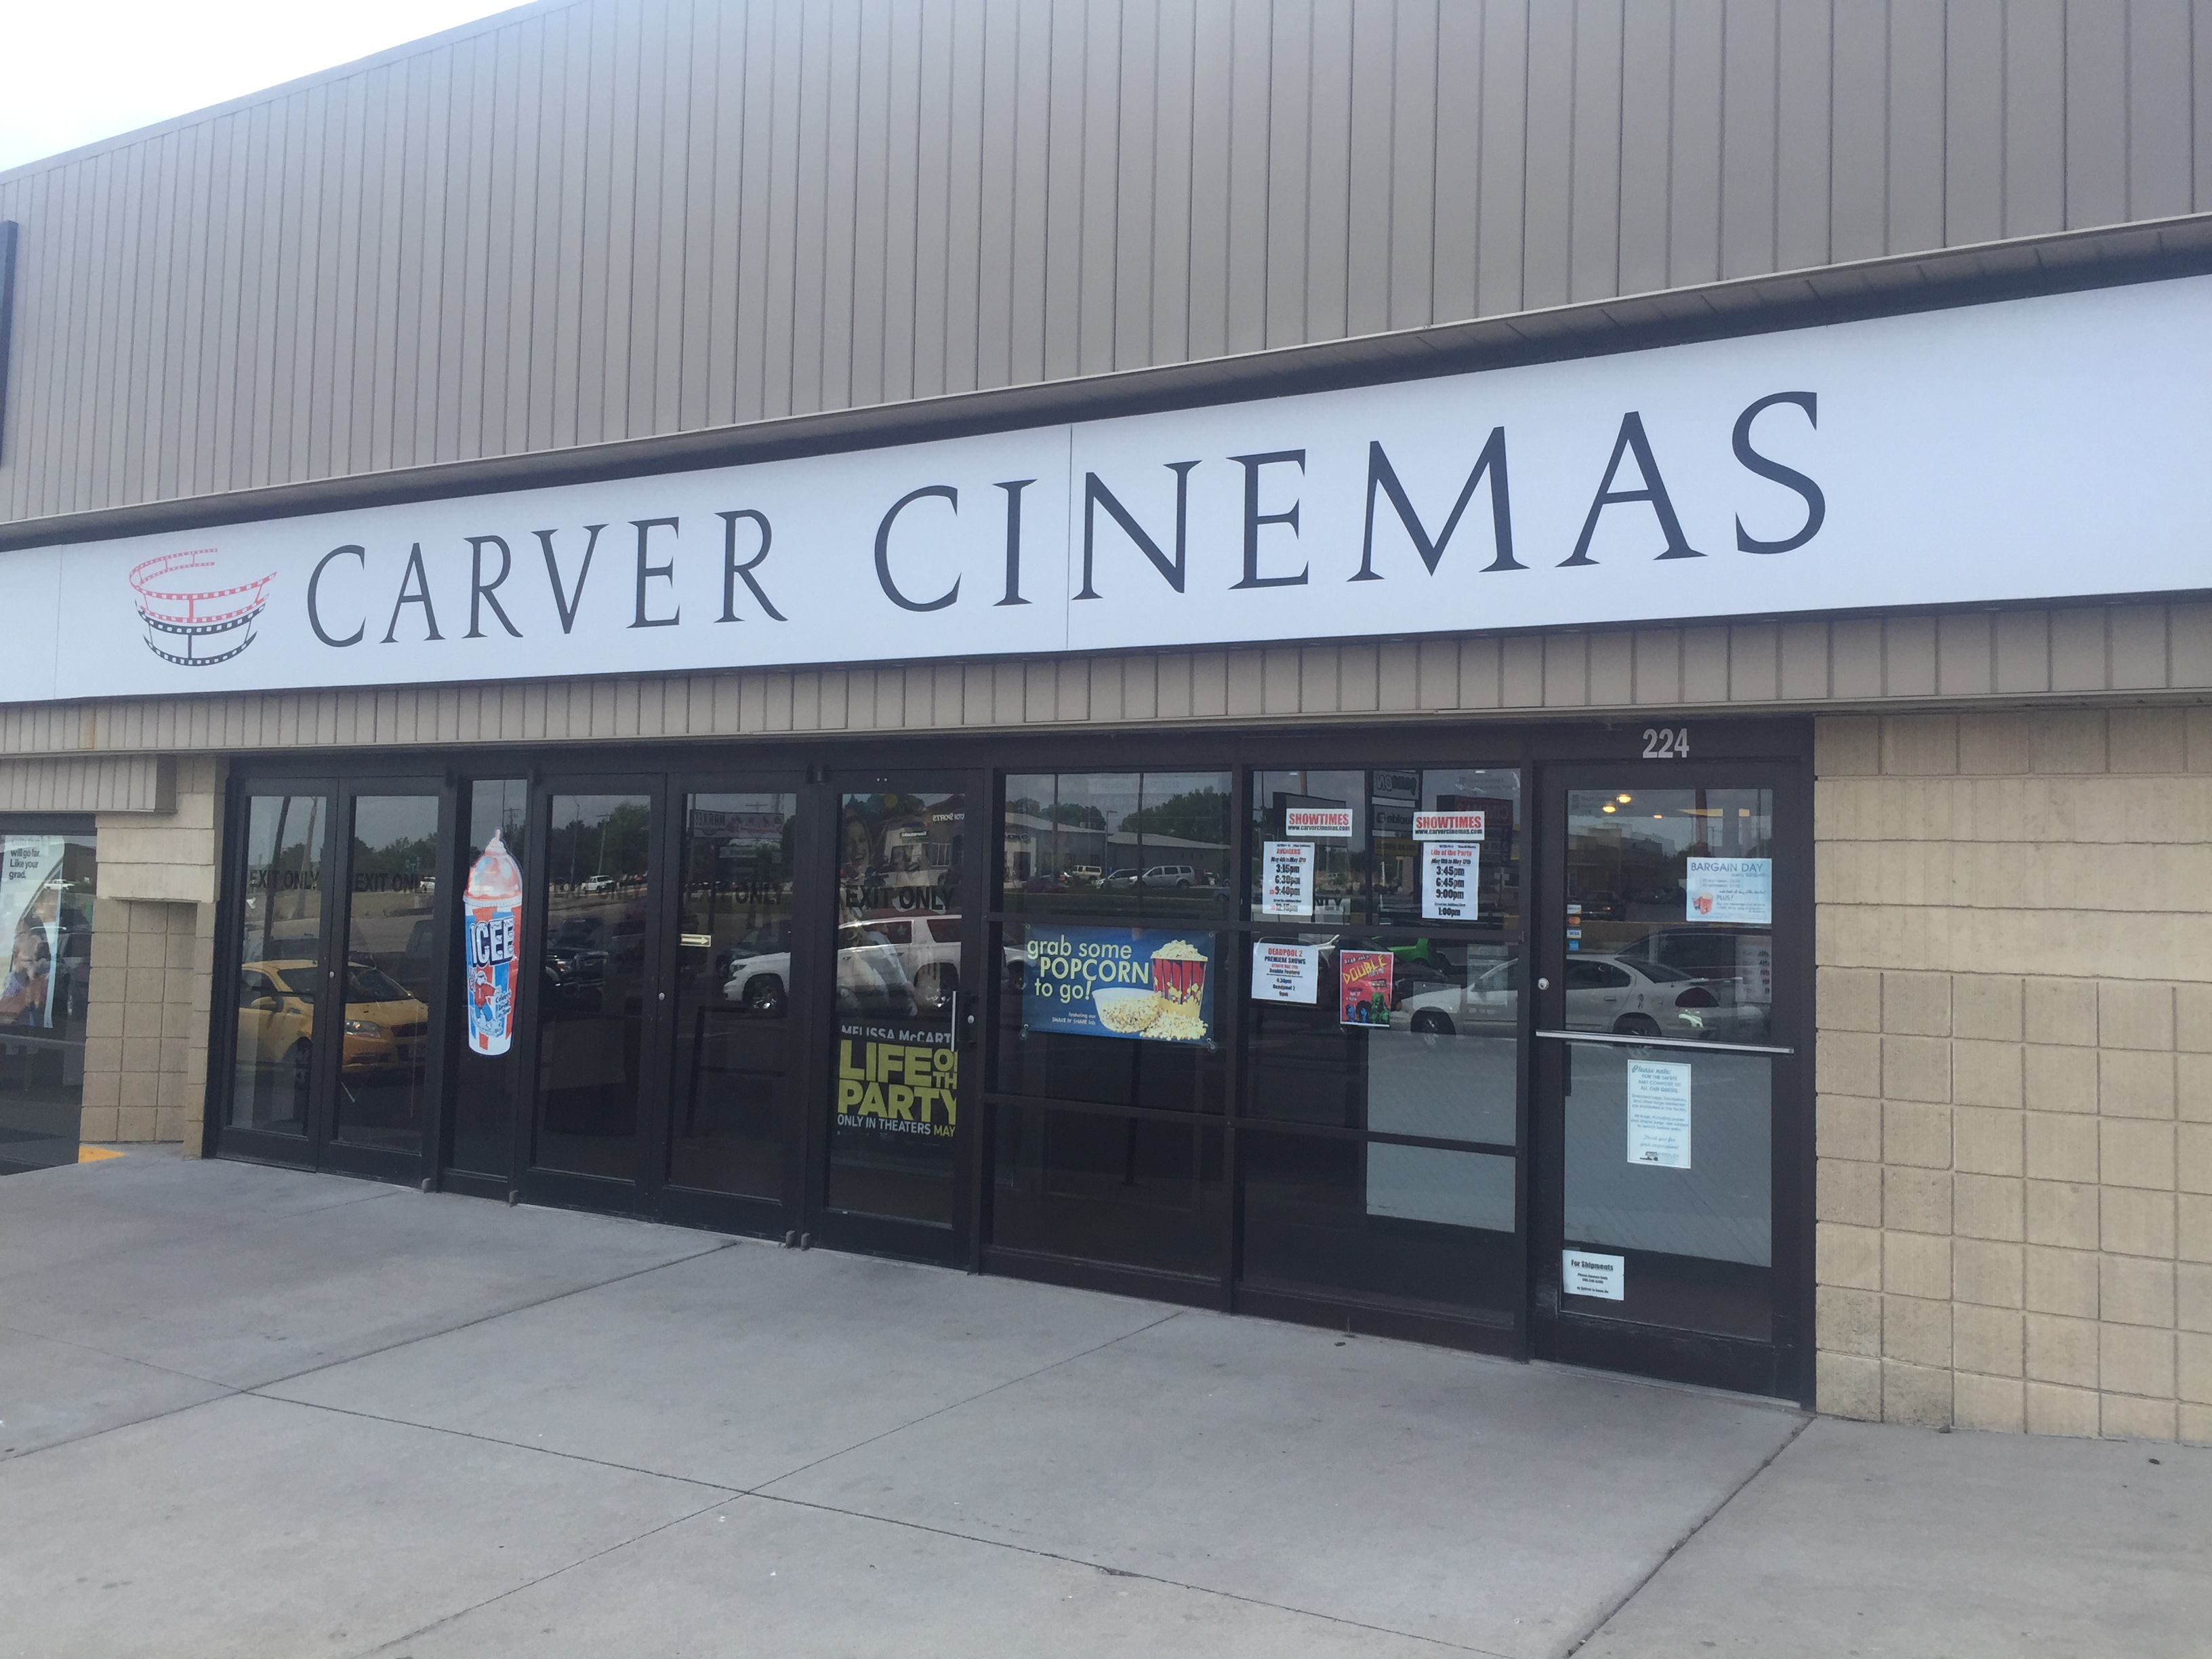 Image of Carver Cinema 3